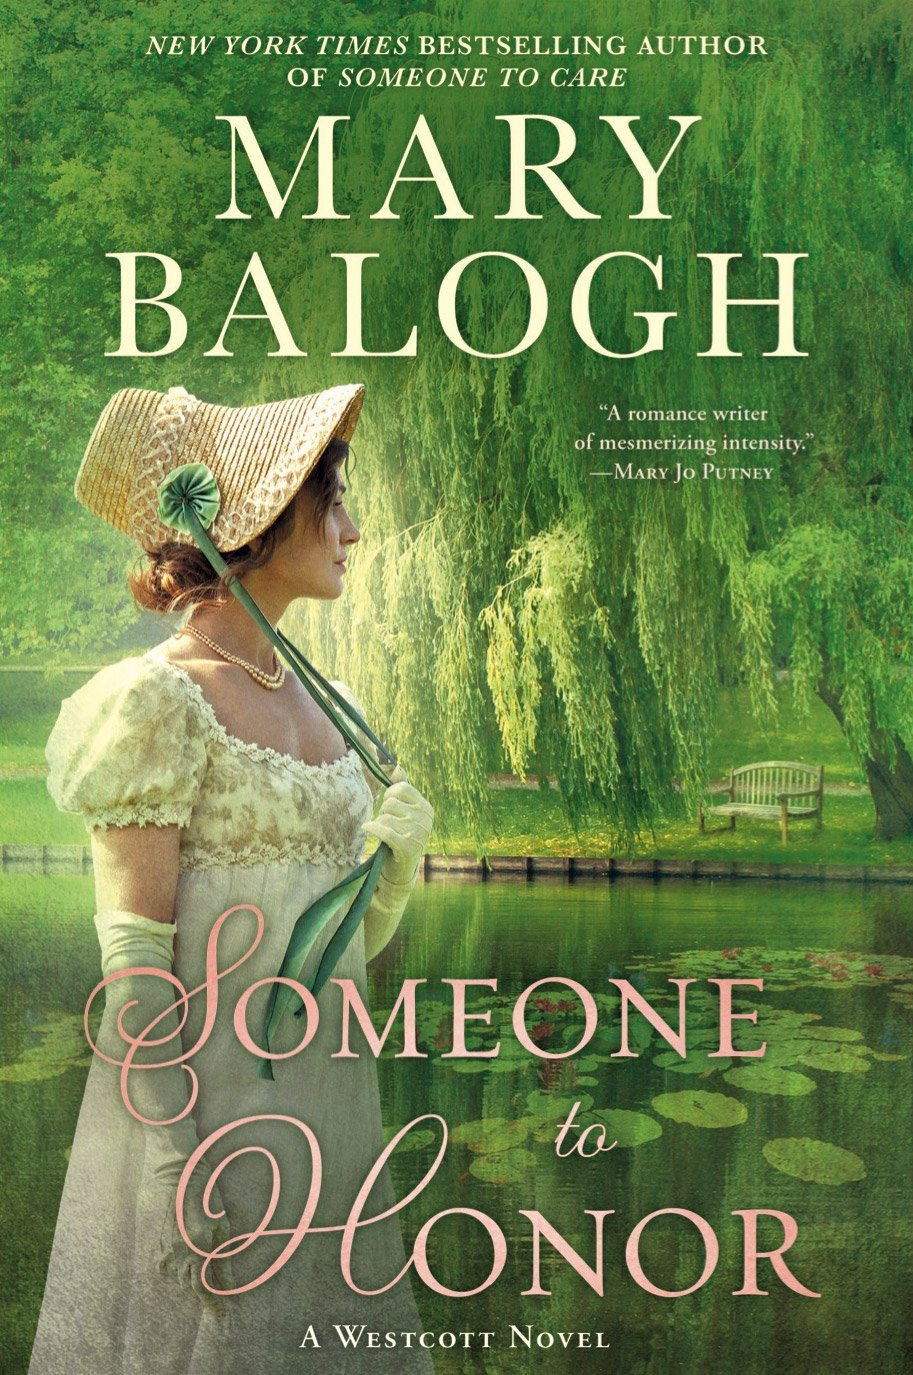 Mary Balogh | 35 Time New York Times Bestselling Author |